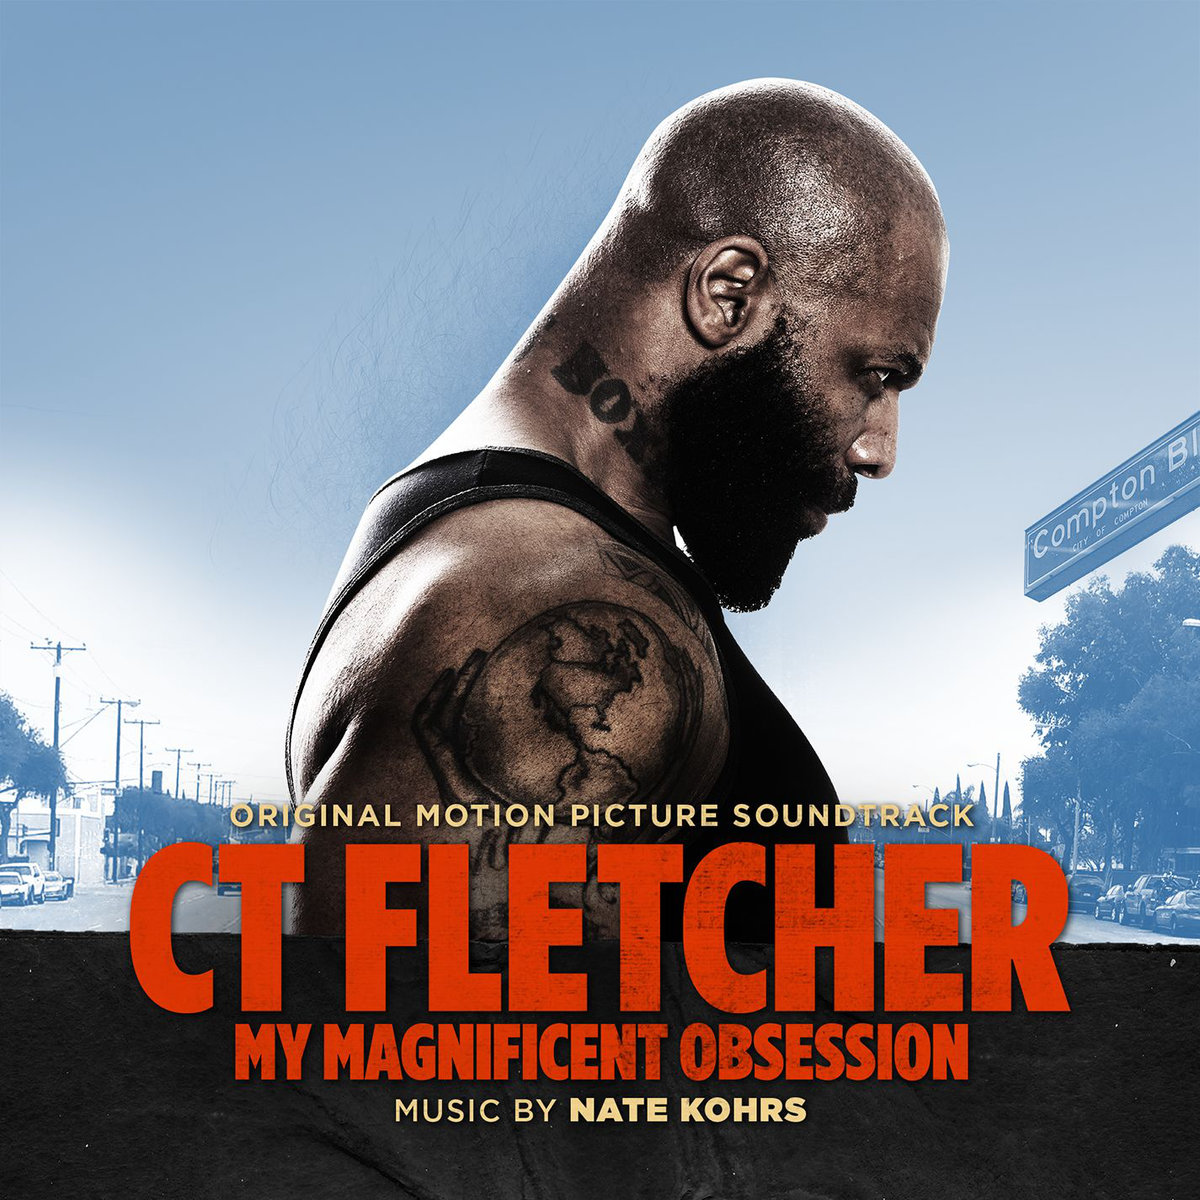 ct fletcher 10 rules of dating